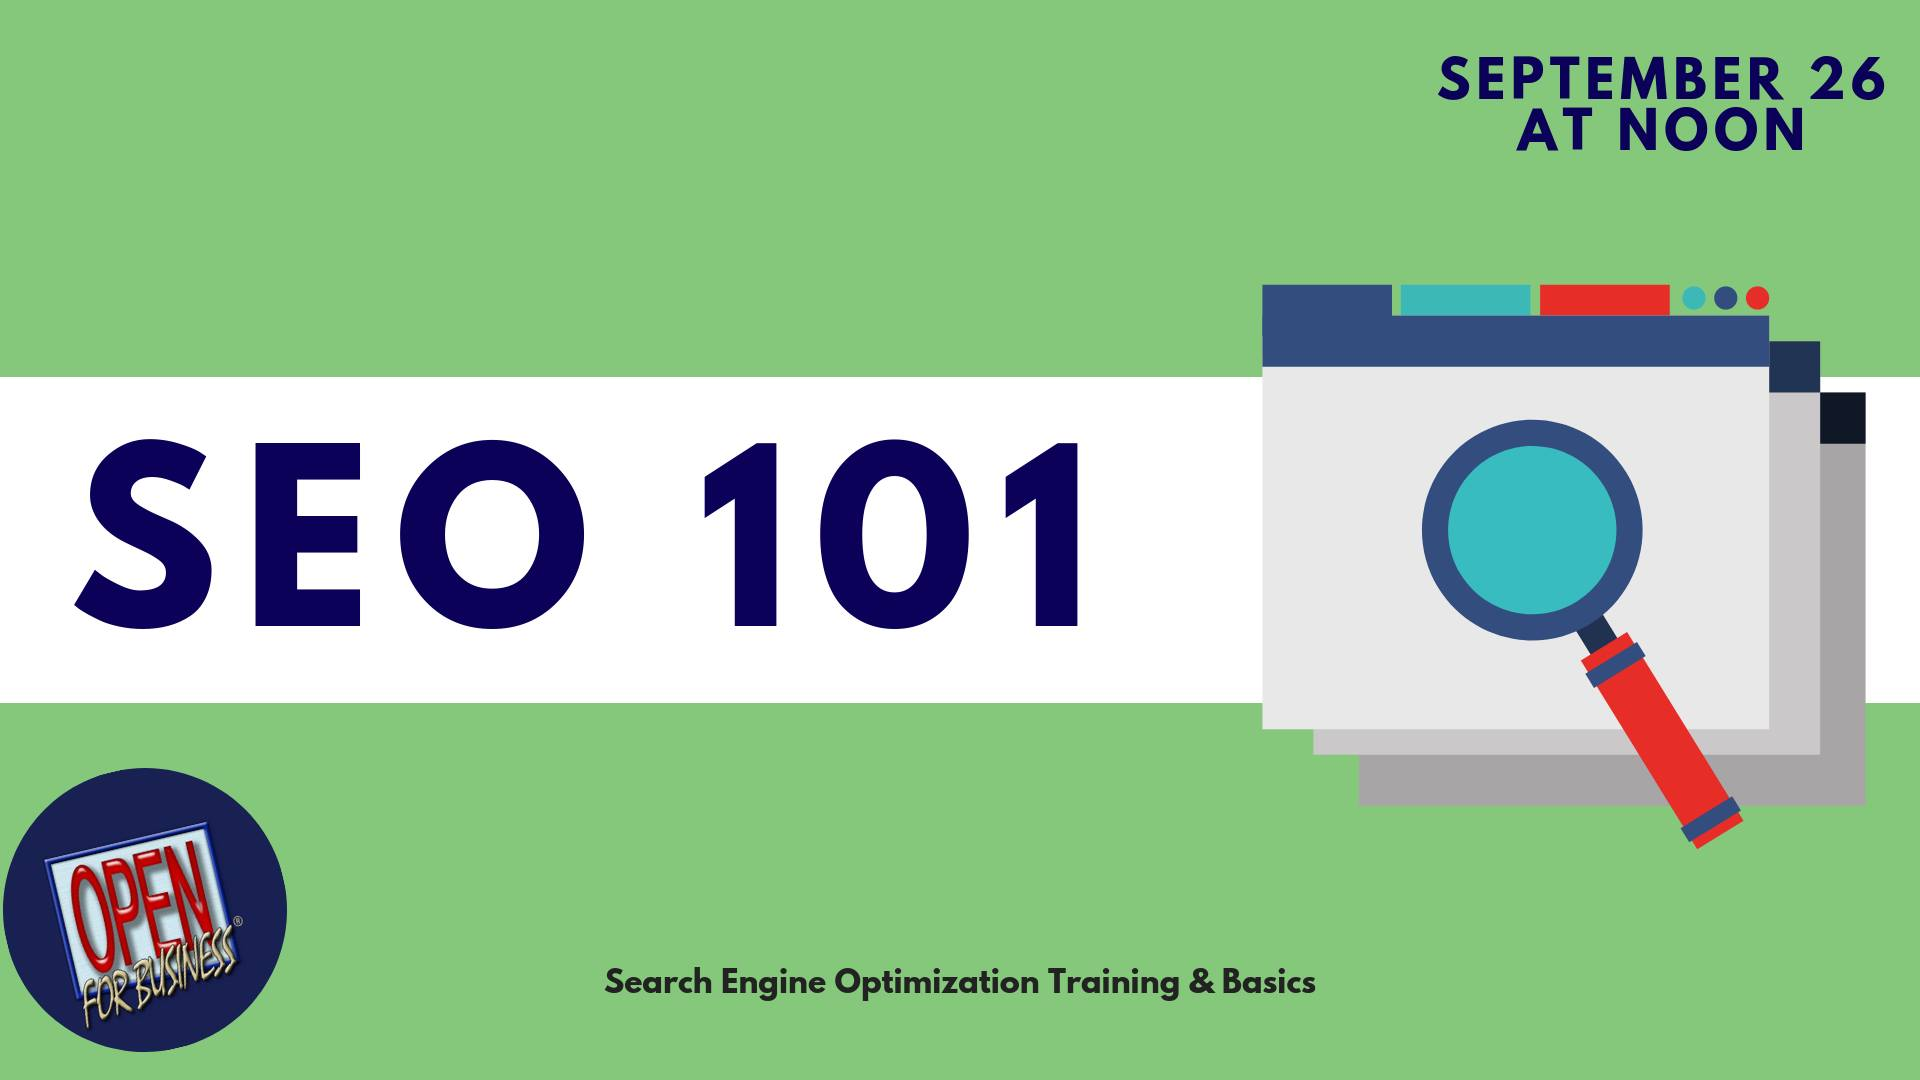 Open For Business SEO 101